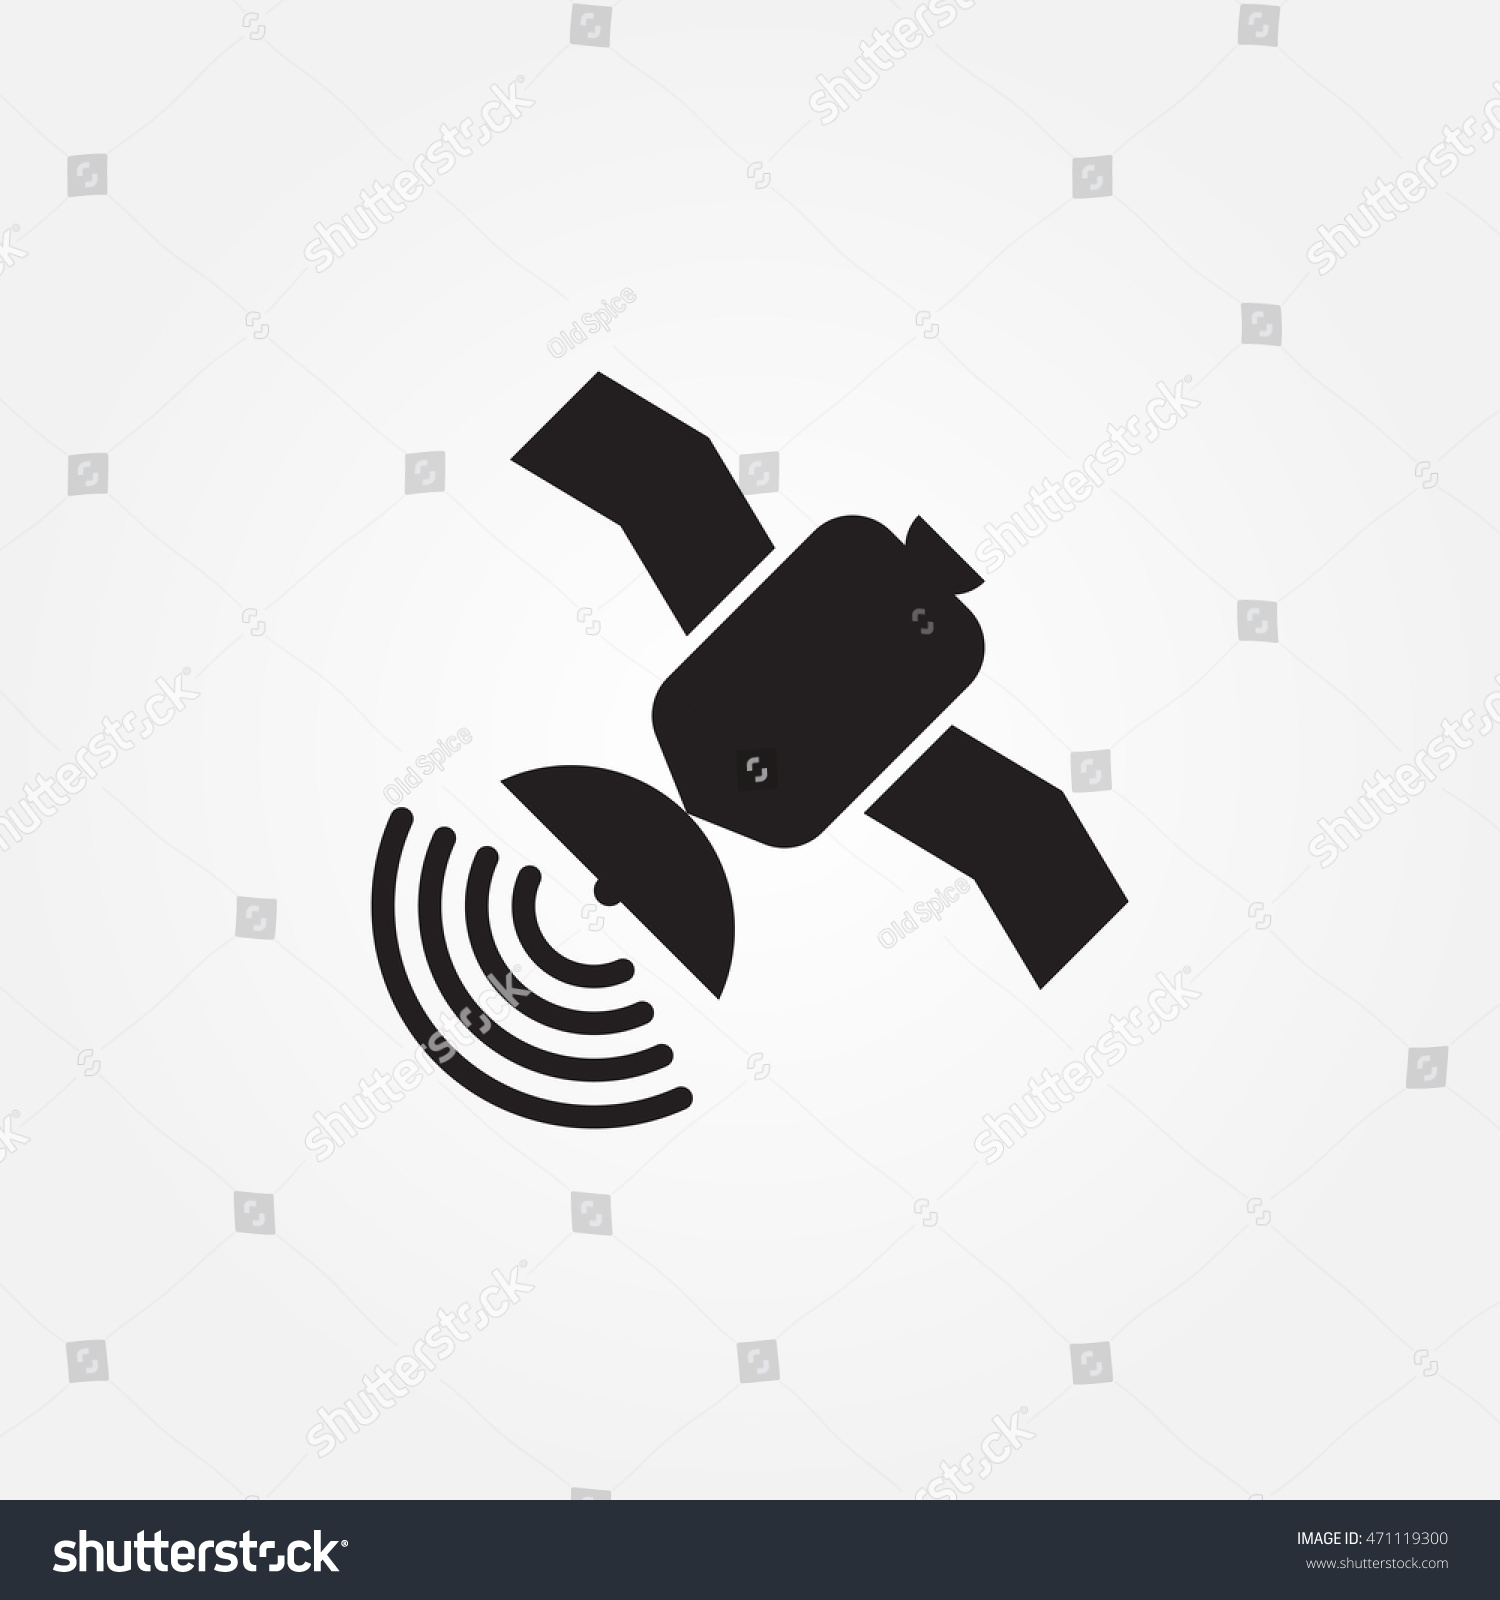 Sputnik Vector Icon Stock Vector Royalty Free 471119300 Shutterstock